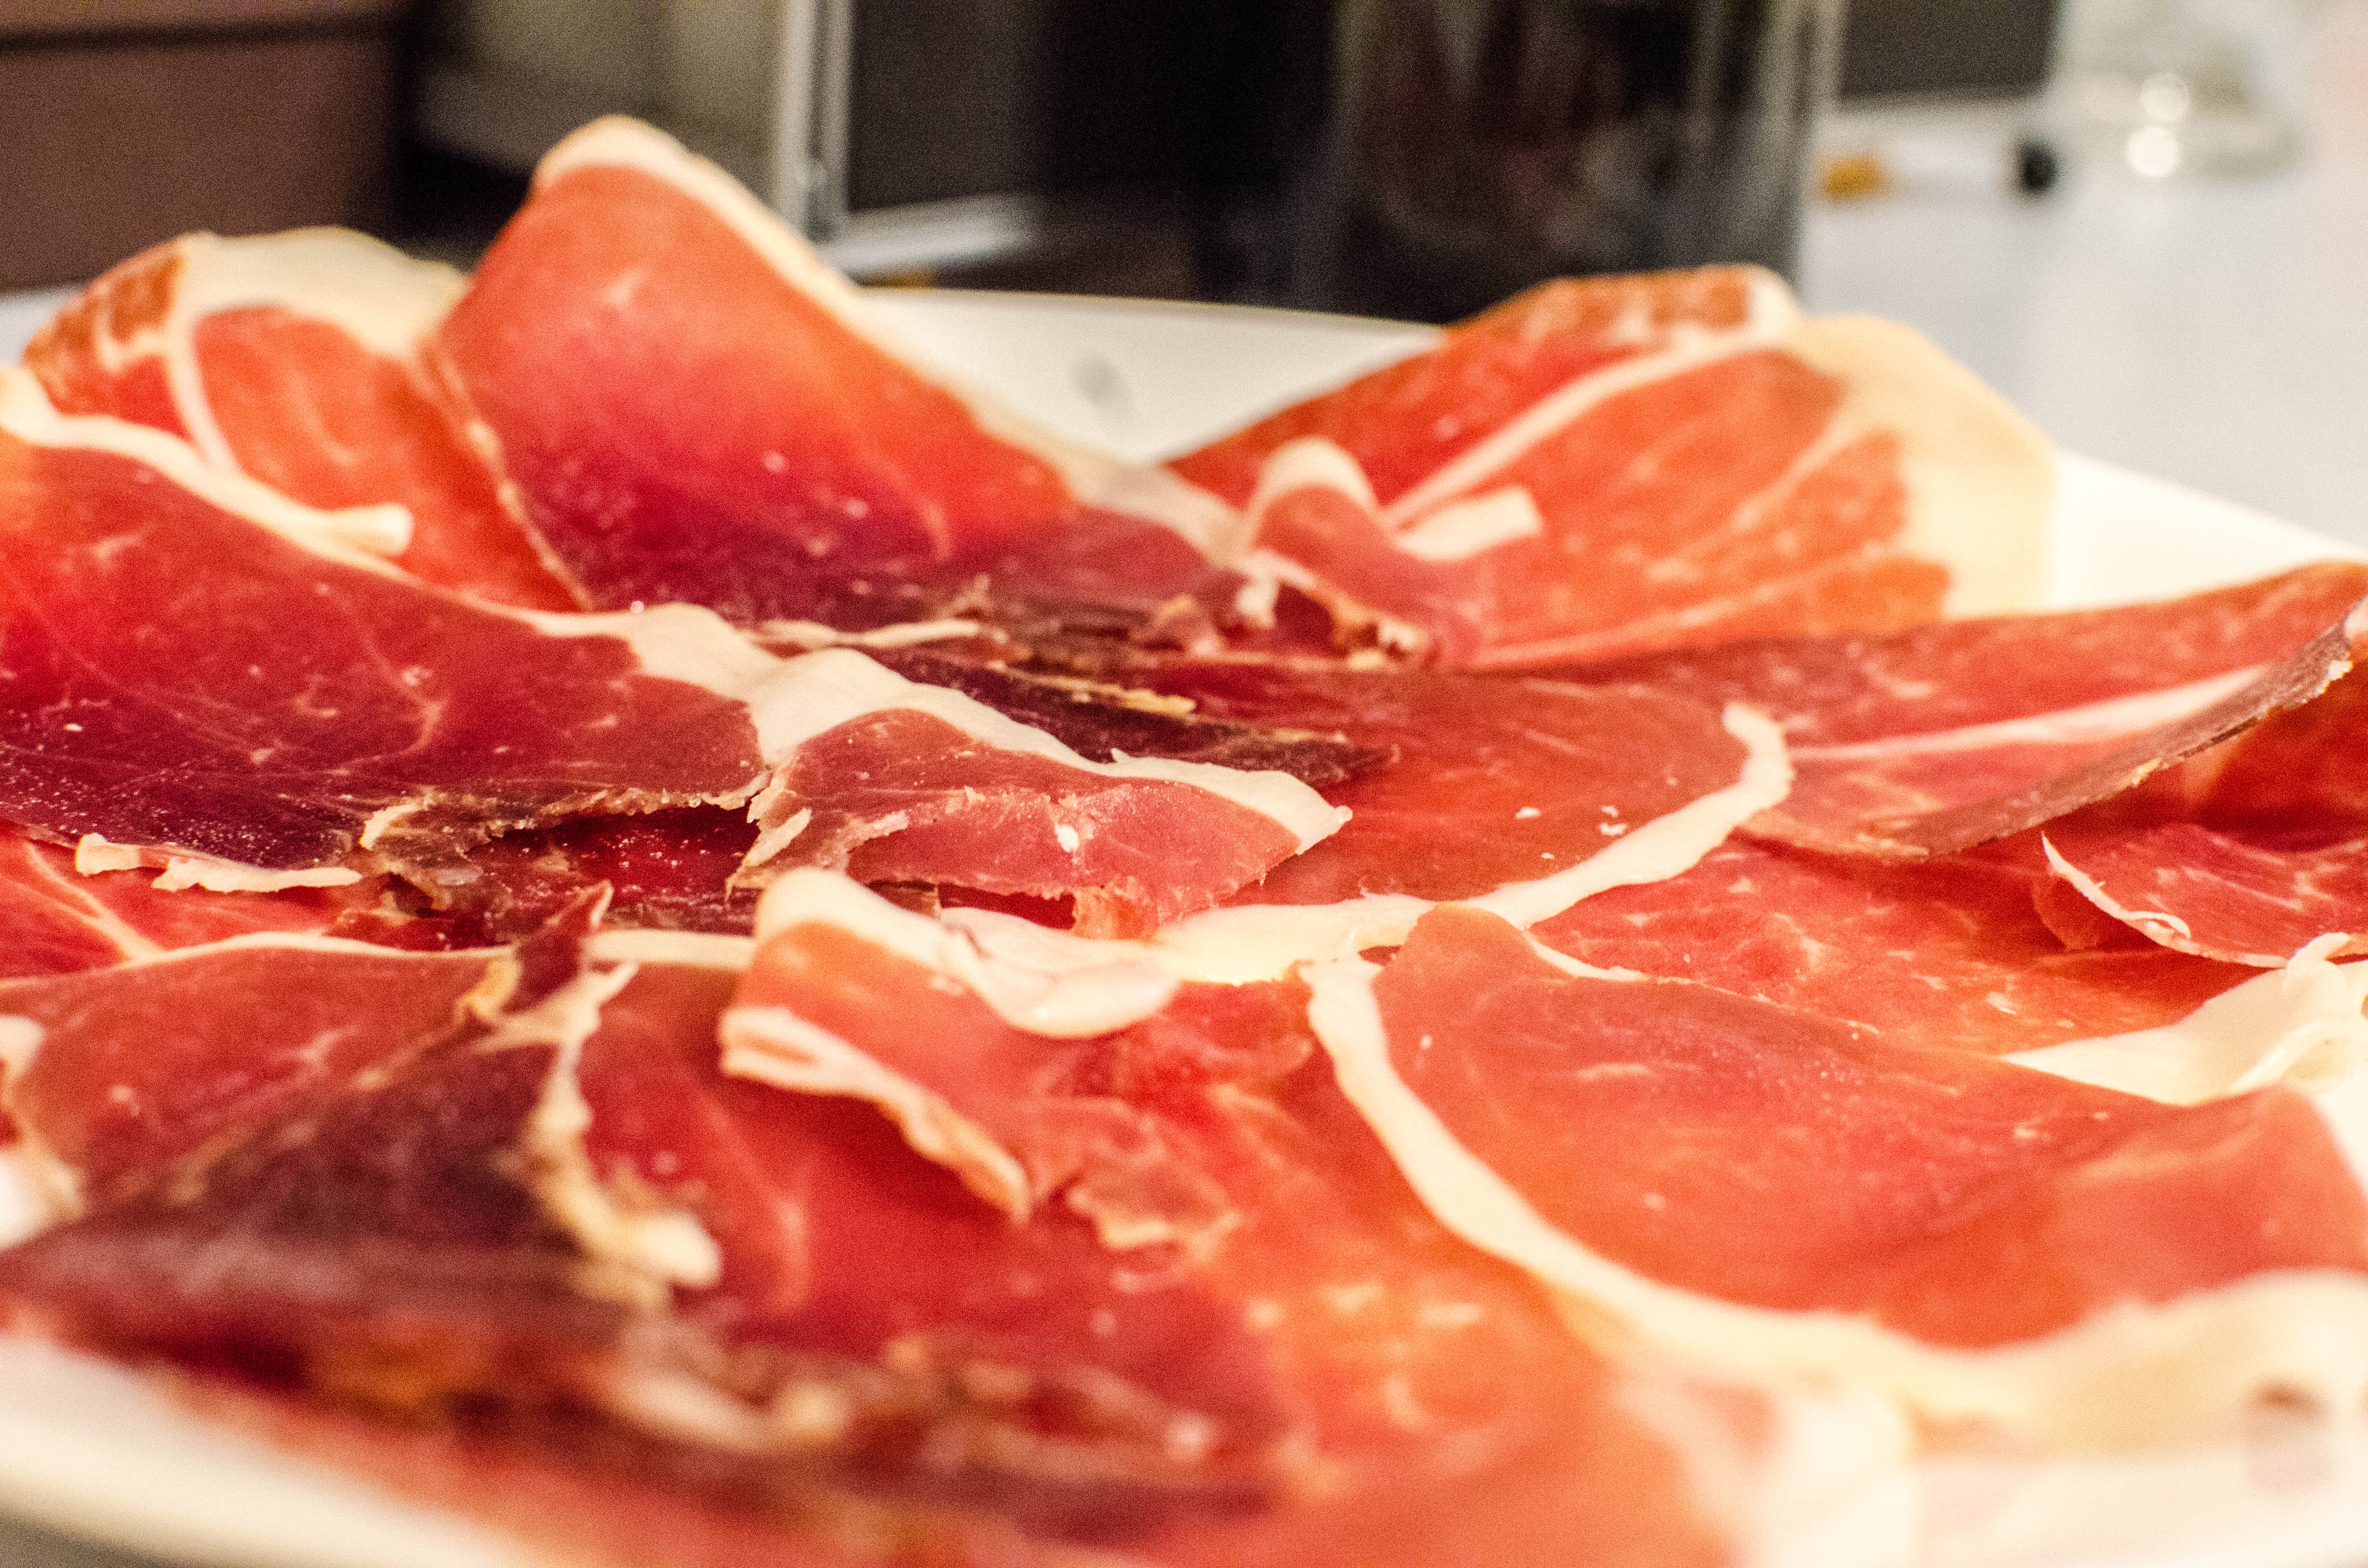 Delicious Destinations Barcelona - Thin cuts of ham from Iberian pig meat